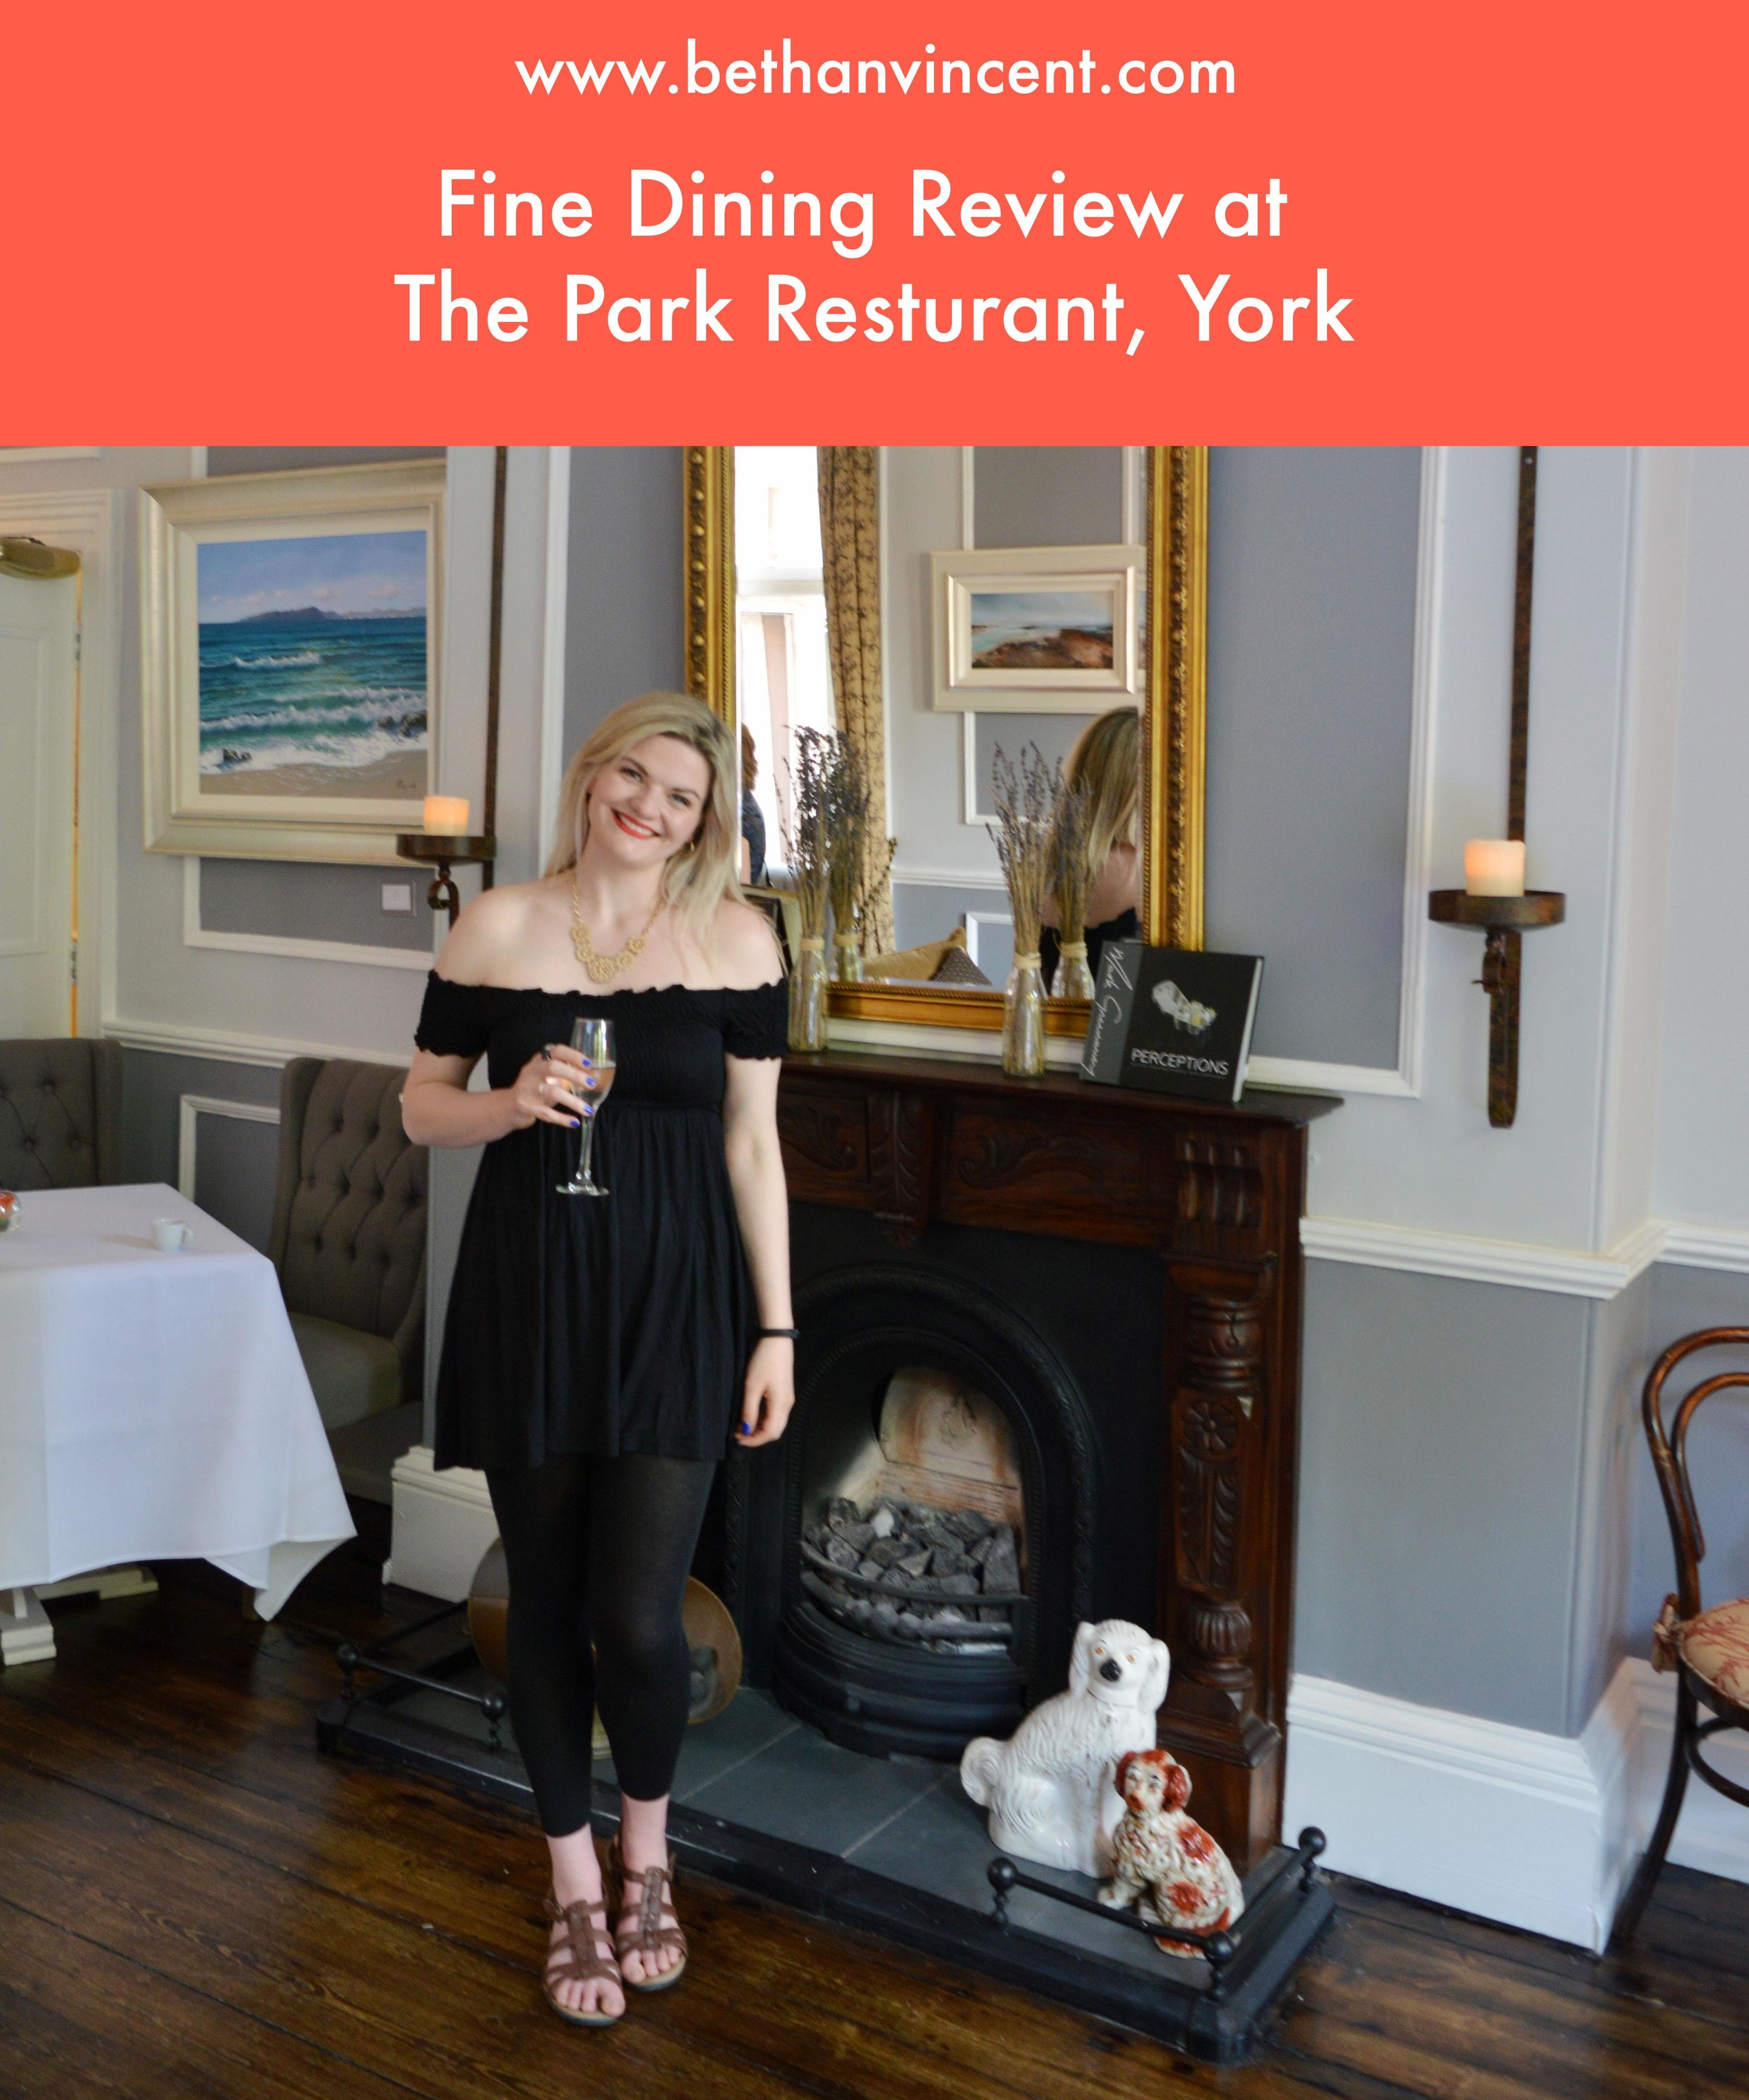 Fine Dining at the Park Restaurant, York